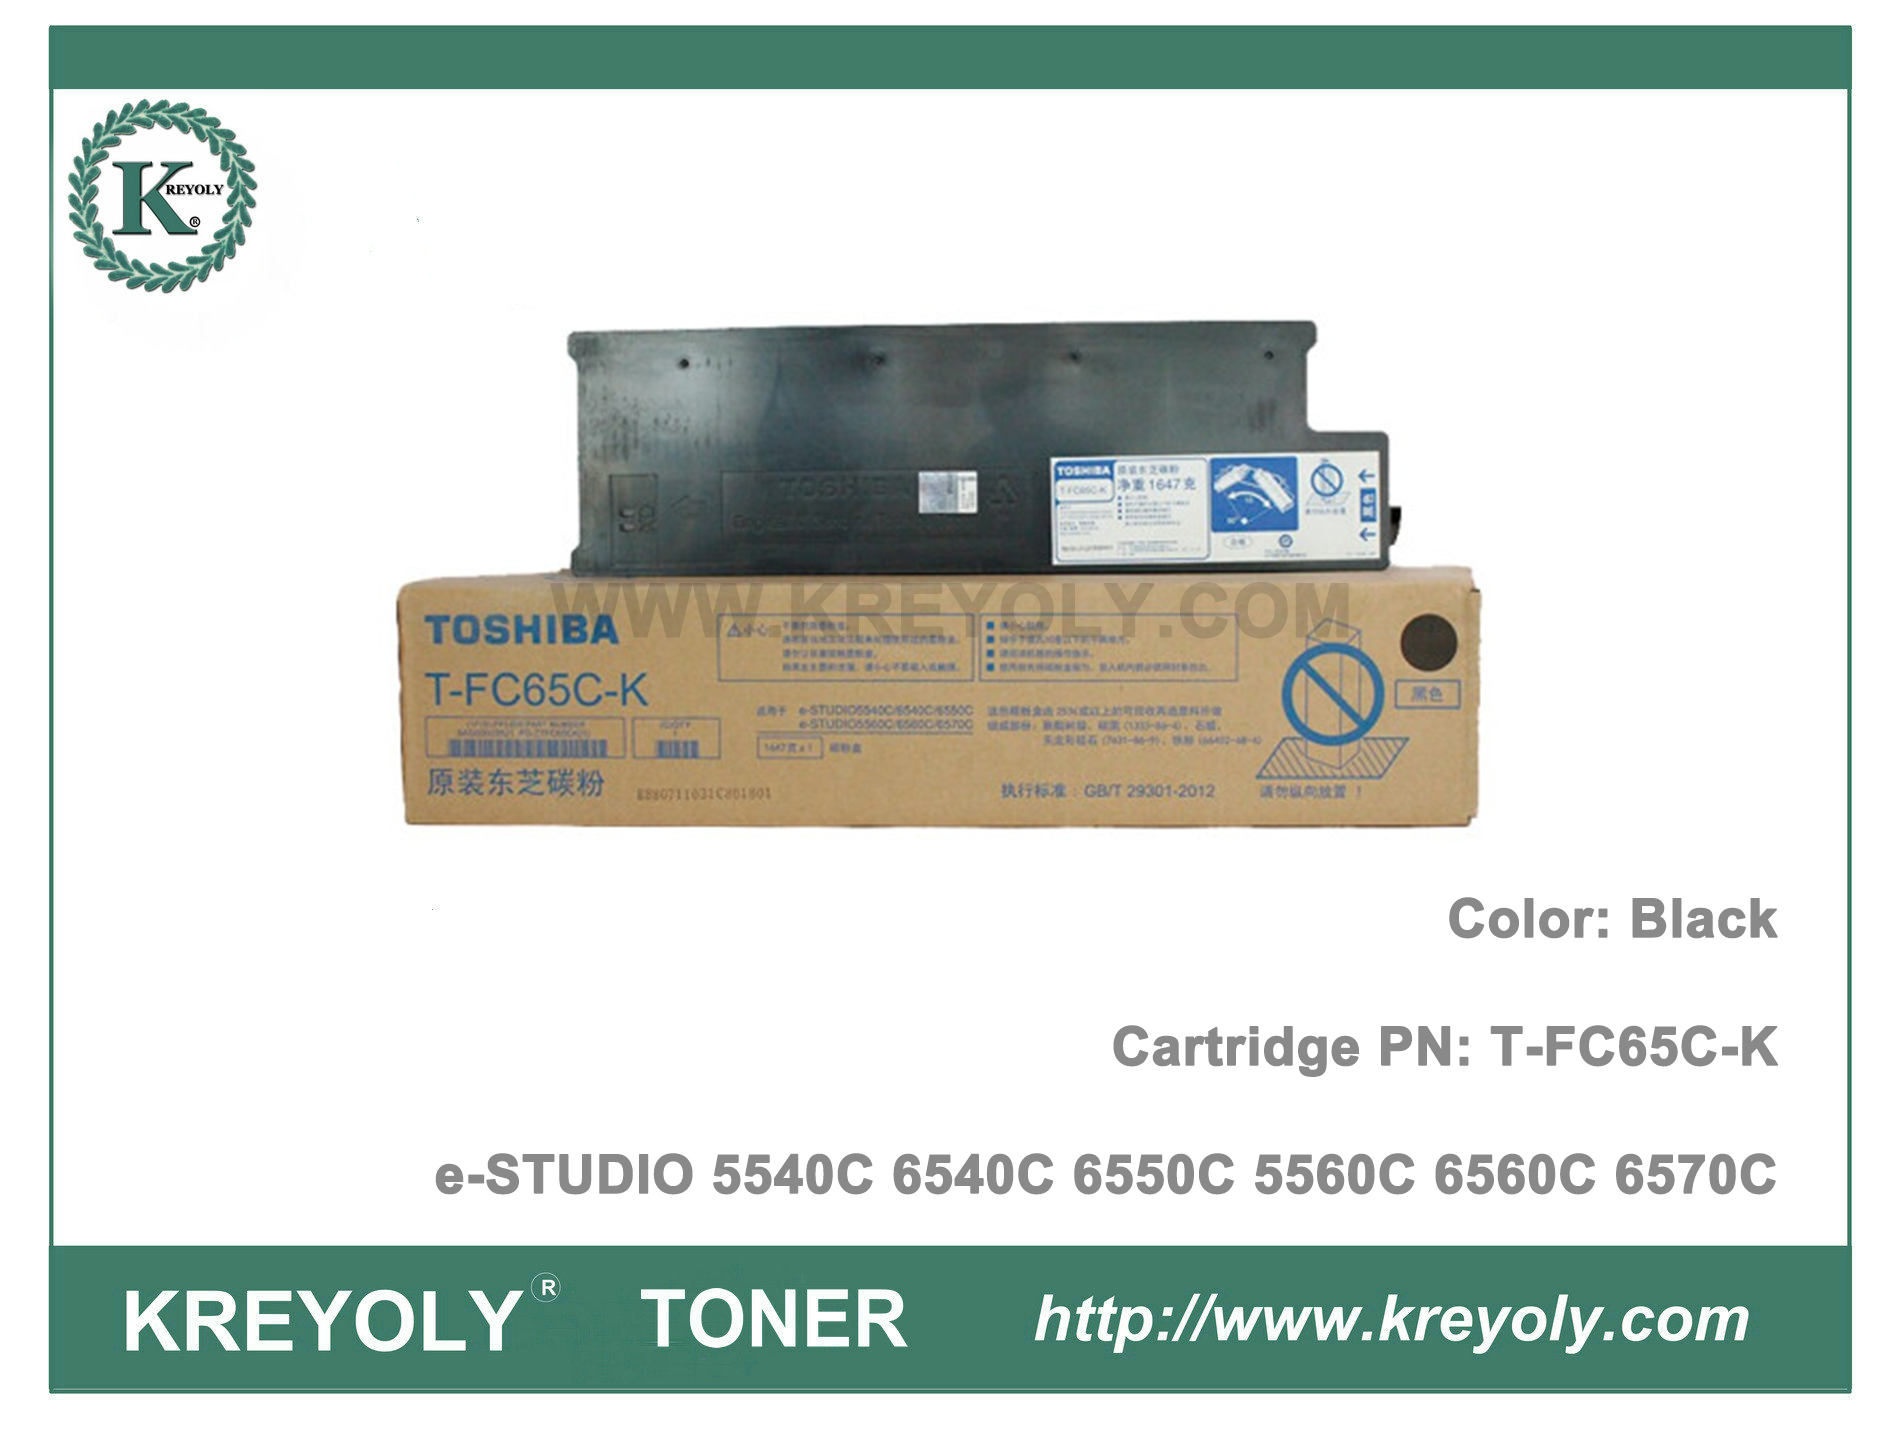 Toshiba T-FC65 Toner Cartridge for E STUDIO 5540C 6540C 6550C 5560C 6560C 6570C